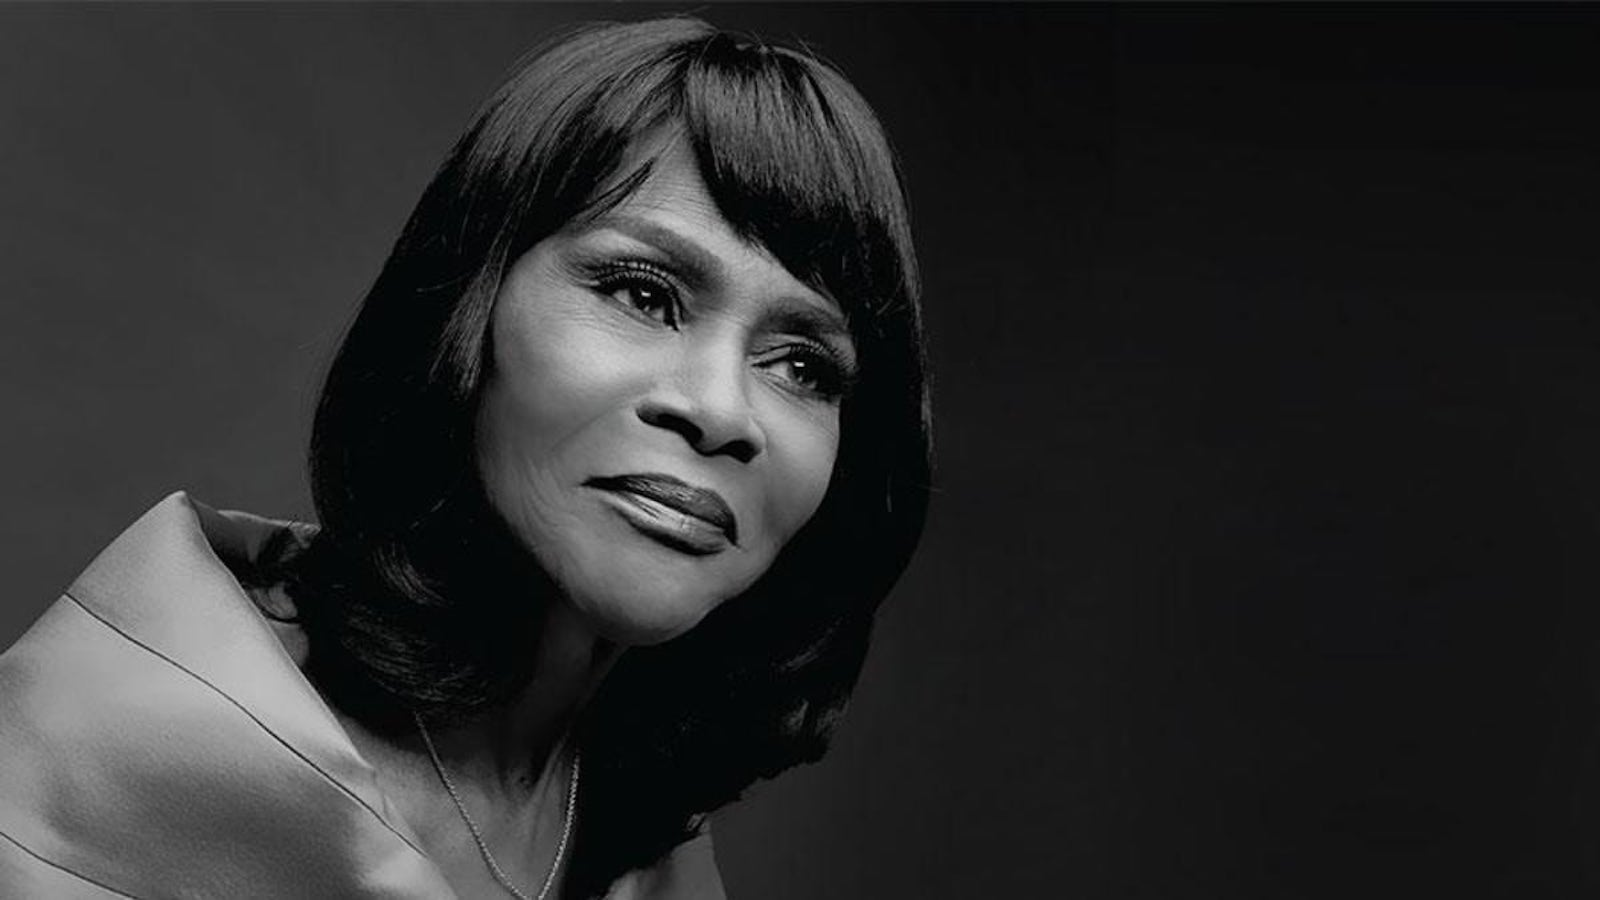 Cicely Tyson, Cherish The Day, Fall From Grace, African American Actress, Black Actress, African American Film, Black Film, KOLUMN Magazine, KOLUMN, KINDR'D Magazine, KINDR'D, Willoughby Avenue, Wriit,